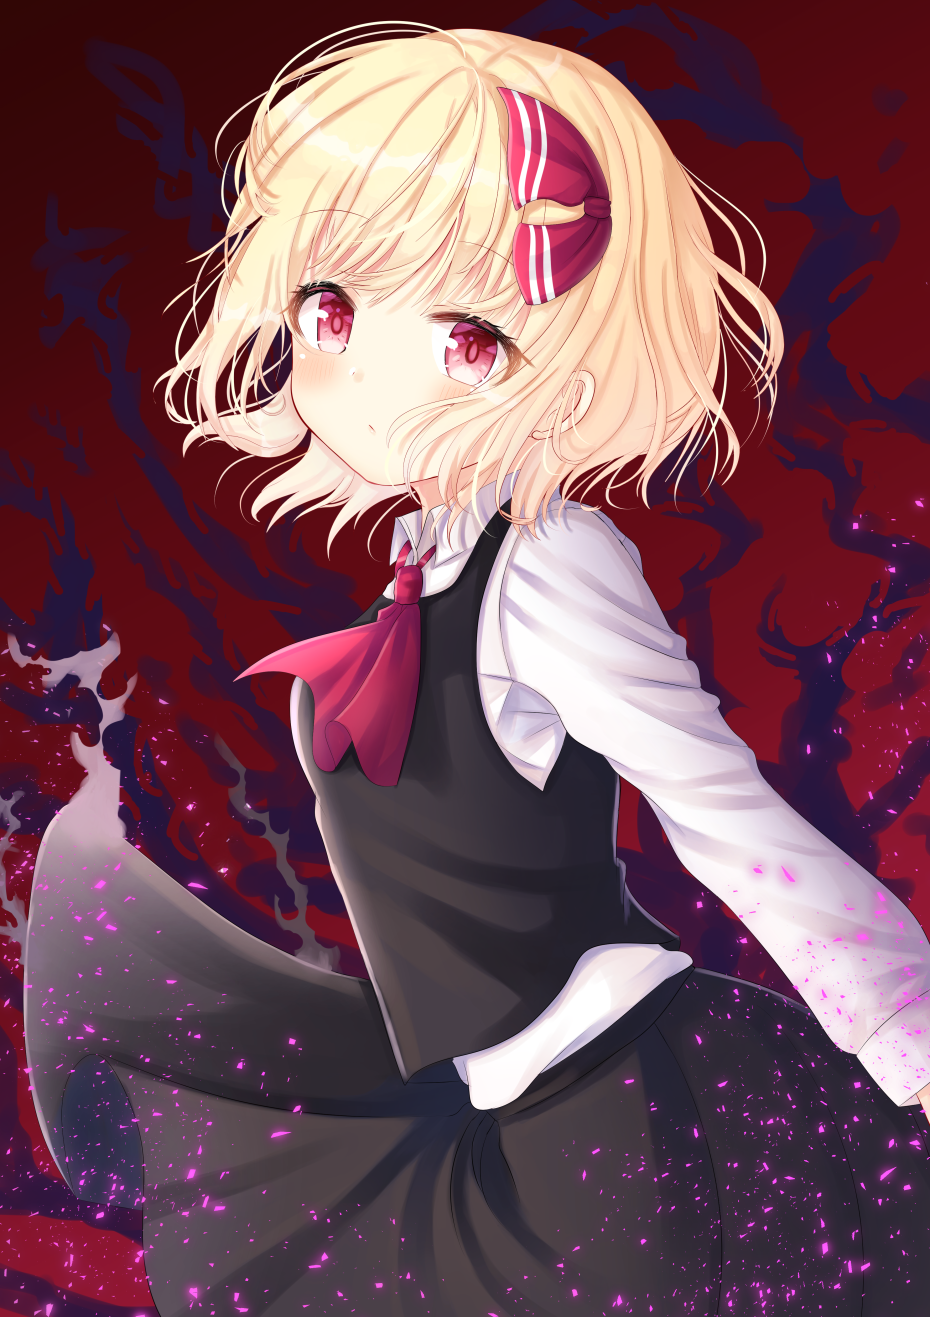 1girl :/ bangs black_skirt black_vest blonde_hair breasts cowboy_shot cravat darkness eyebrows_visible_through_hair from_side hair_ribbon head_tilt highres light_blush light_particles long_sleeves looking_at_viewer nibosisuzu red_background red_eyes red_neckwear ribbon rumia shirt short_hair skirt small_breasts solo standing touhou vest white_shirt wind wind_lift